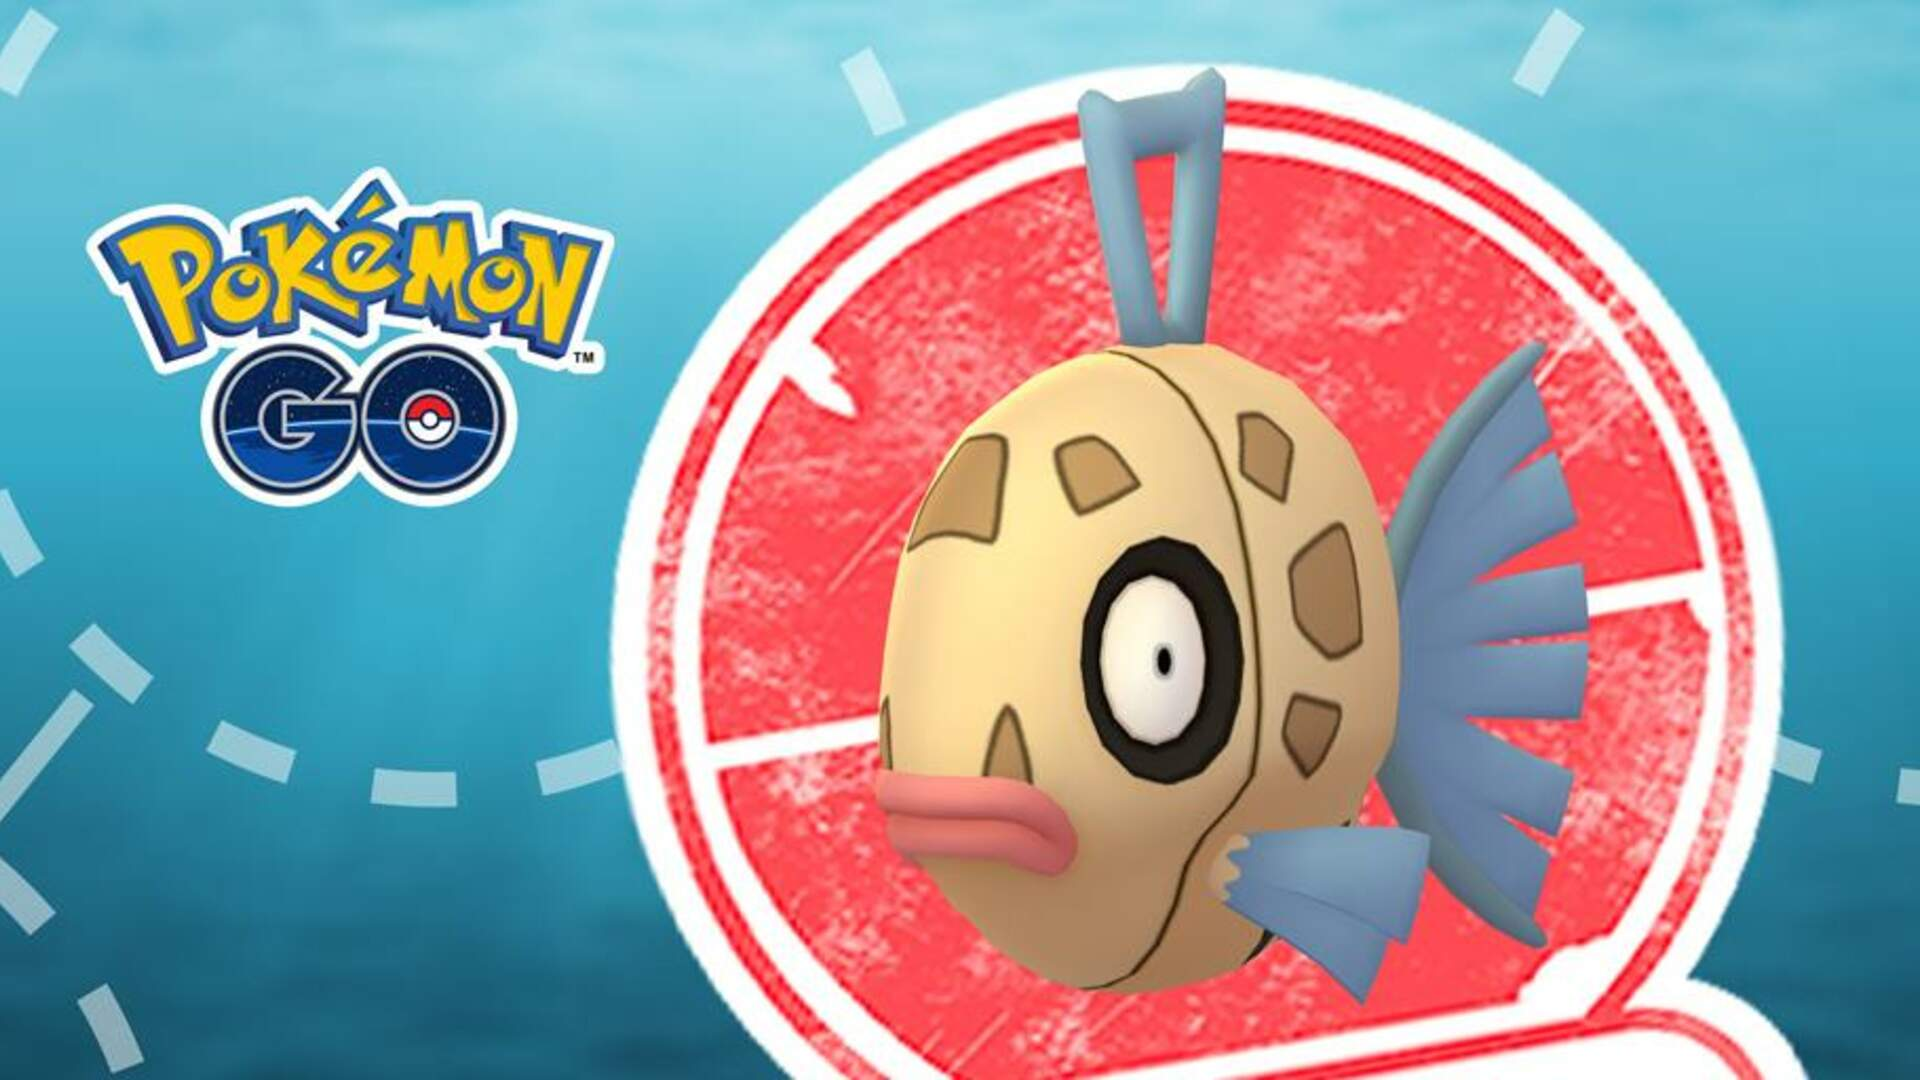 Pokemon Go Feebas Research Tasks, Event Start Time, Date, Shiny Feebas